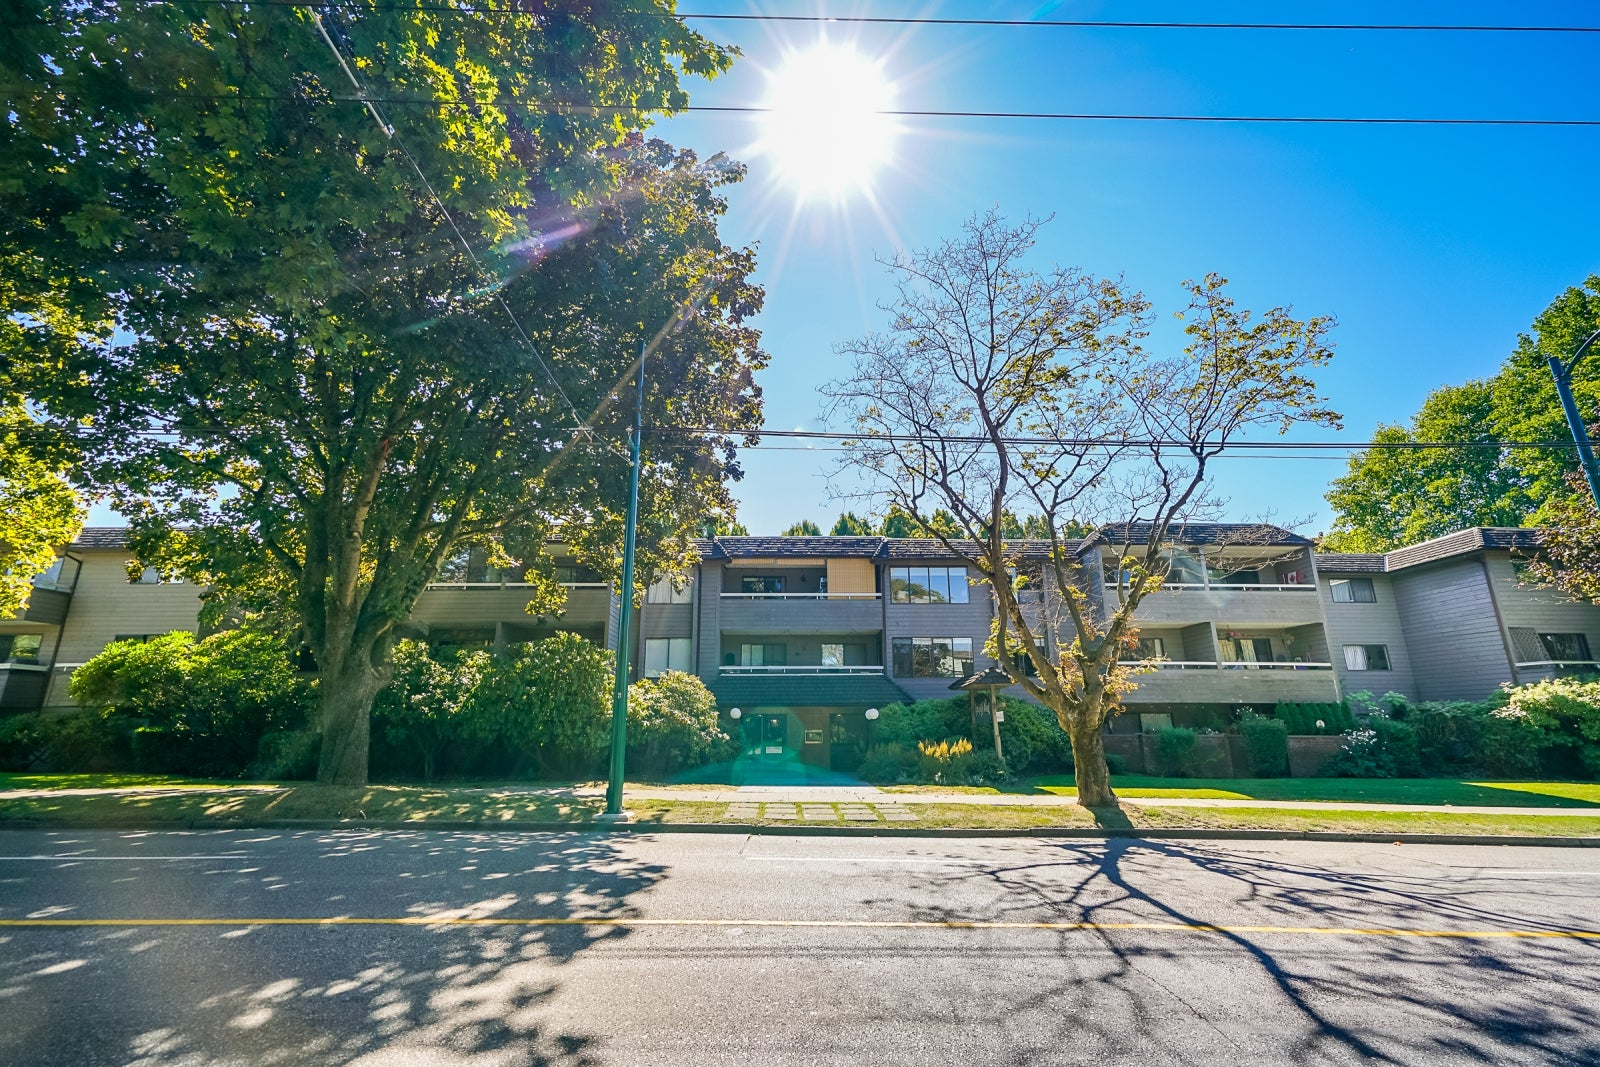 310 1770 W 12TH AVENUE - Fairview VW Apartment/Condo for sale, 2 Bedrooms (R2528854) #34